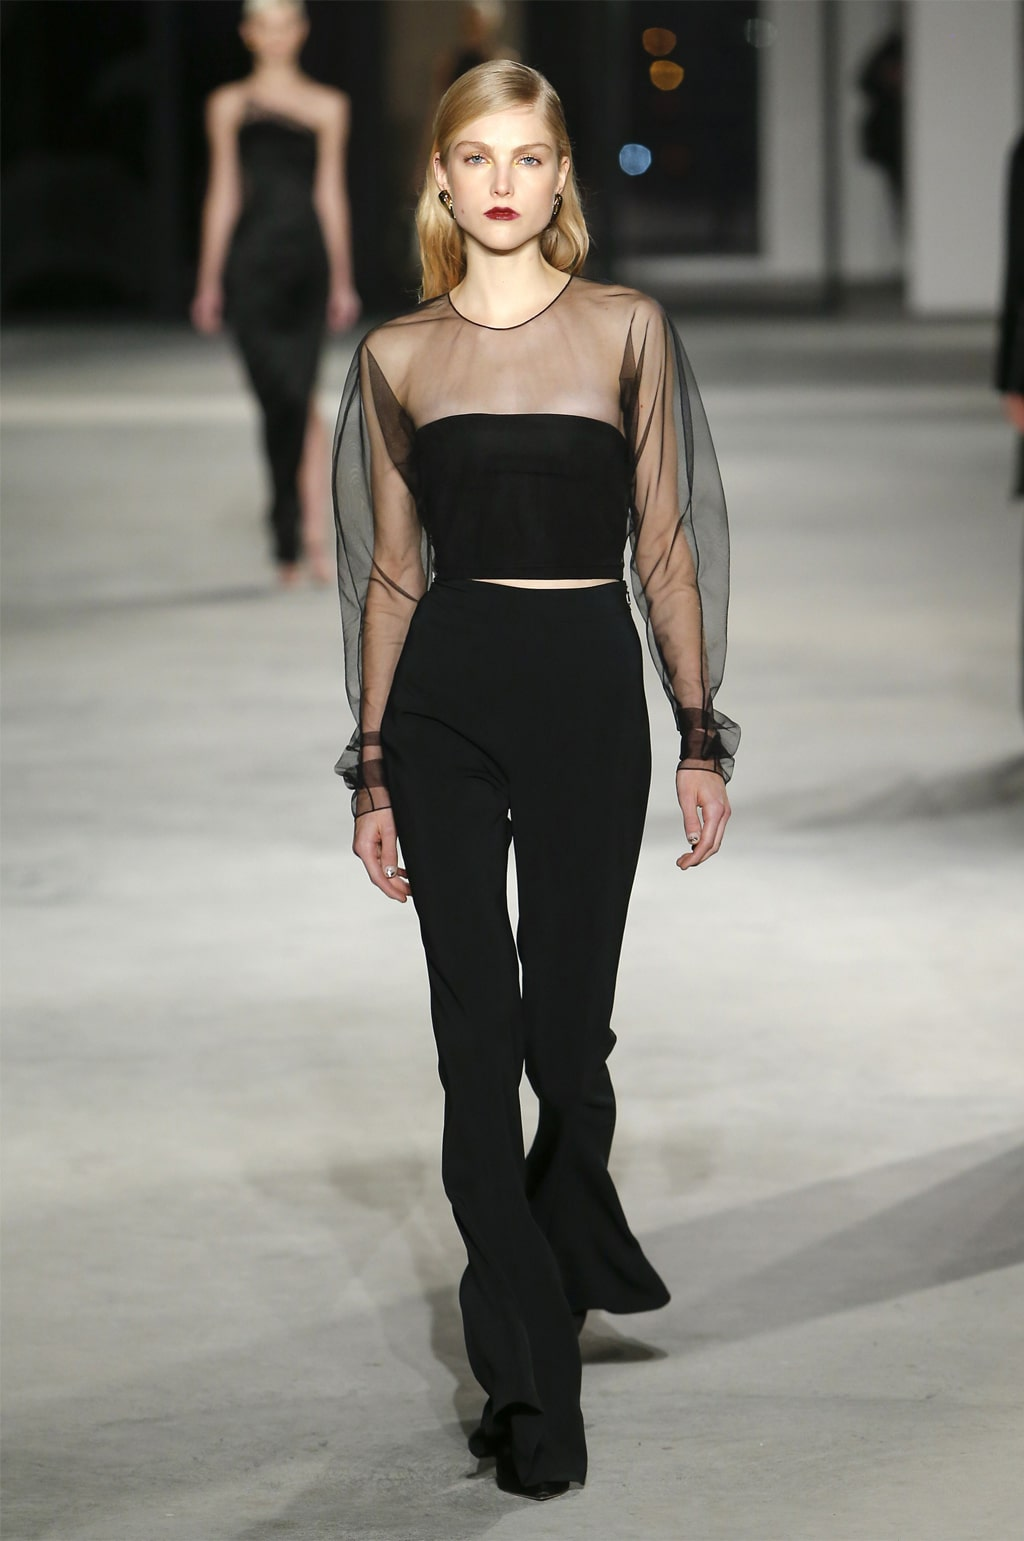 Black is back! Fashion sets the tone.